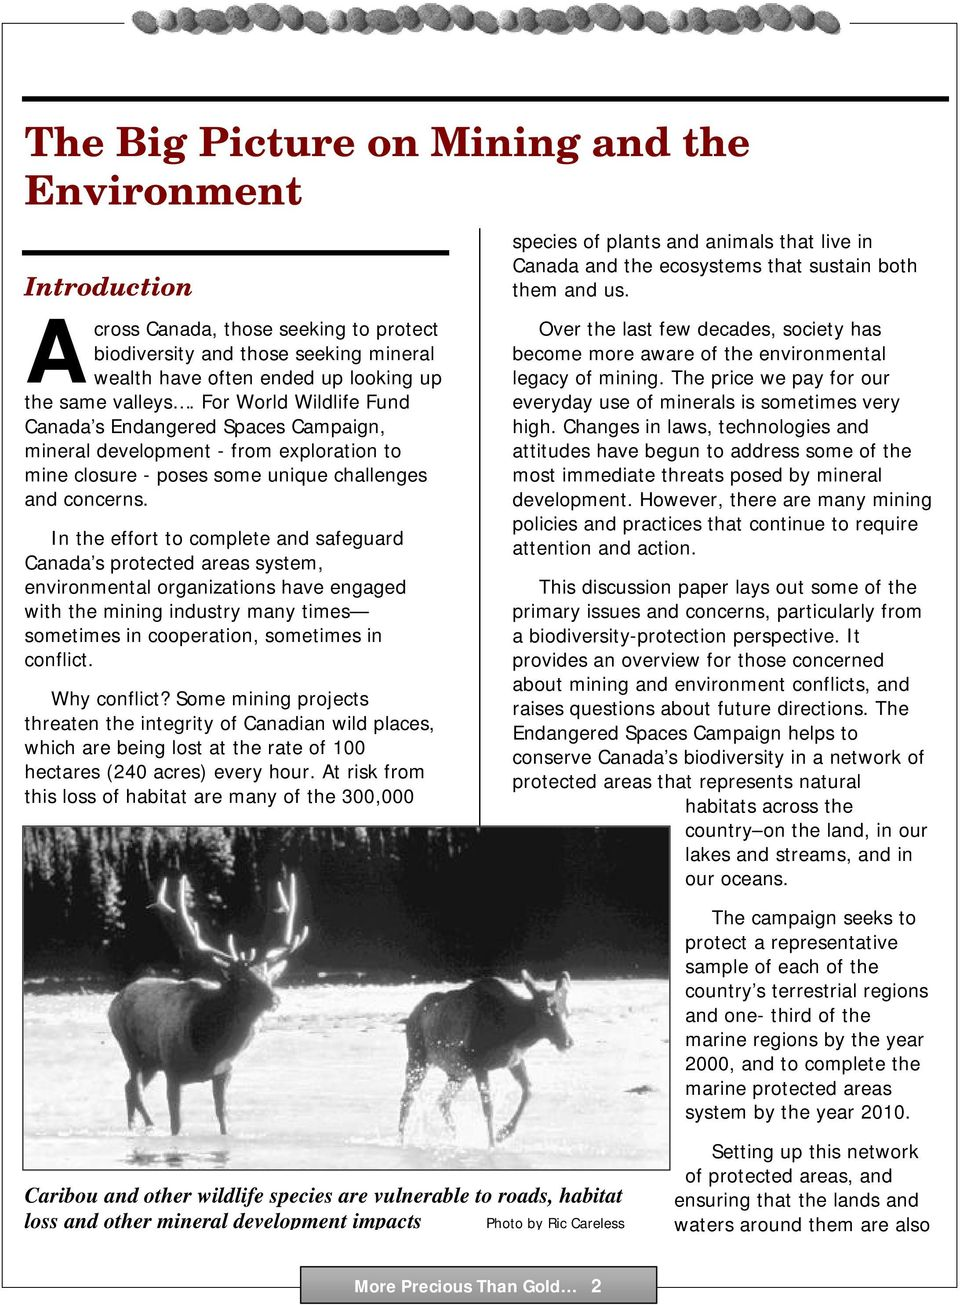 In the effort to complete and safeguard Canada s protected areas system, environmental organizations have engaged with the mining industry many times sometimes in cooperation, sometimes in conflict.